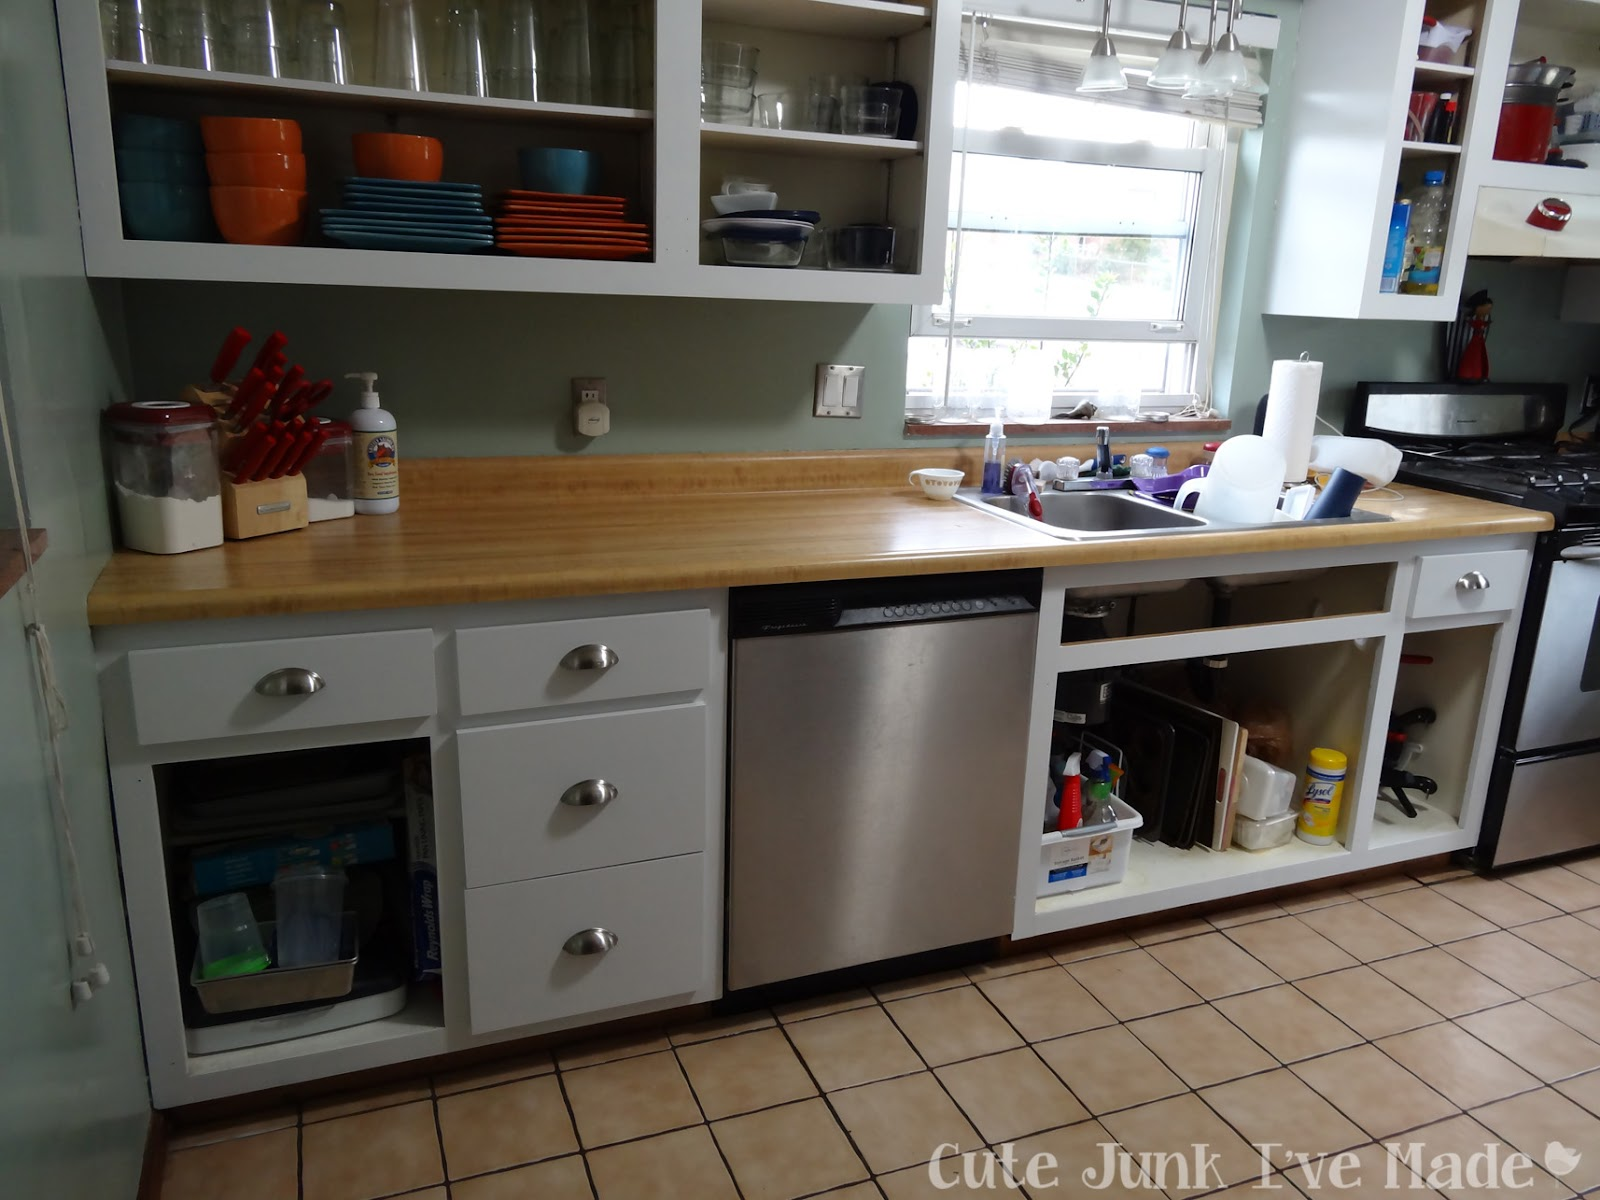 Cute Junk Ive Made How To Paint Laminate Cabinets Part Three